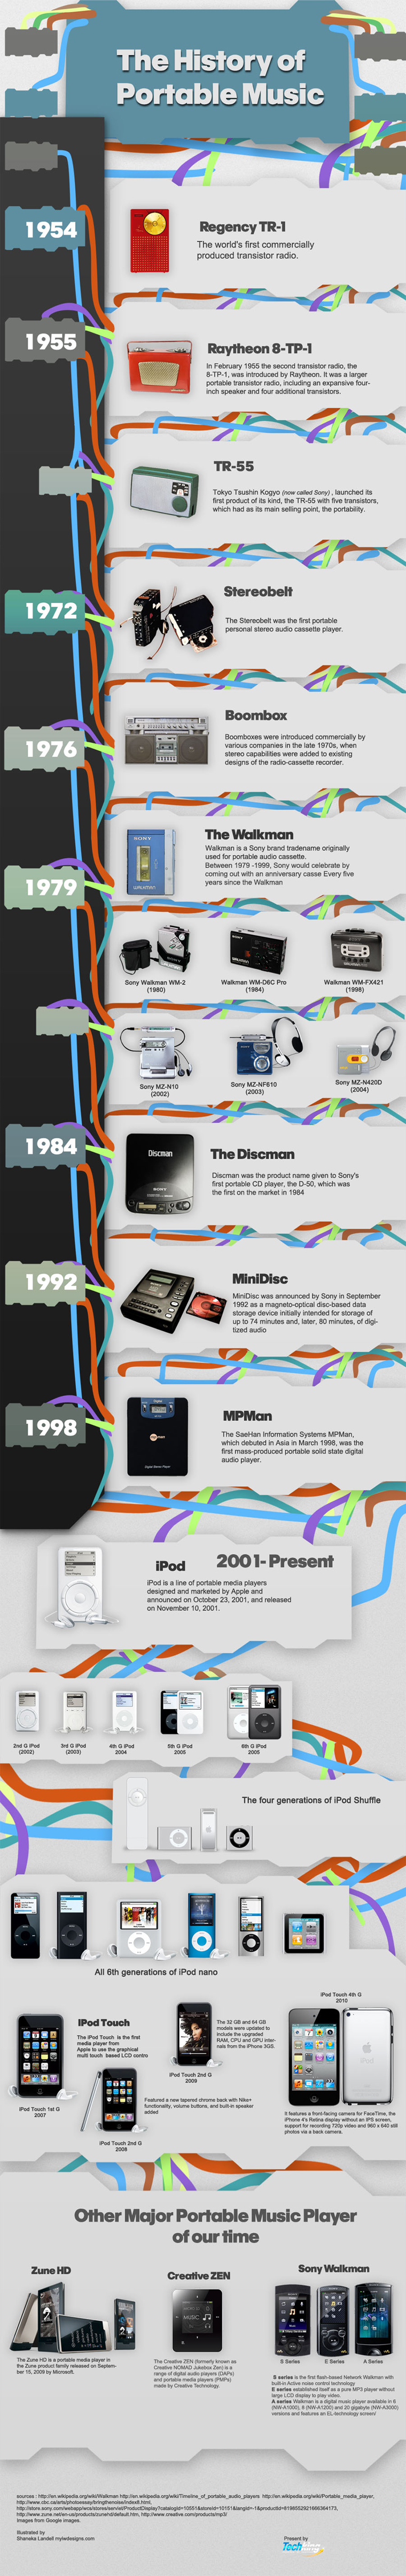 The Evolution of Portable Music - Infographic